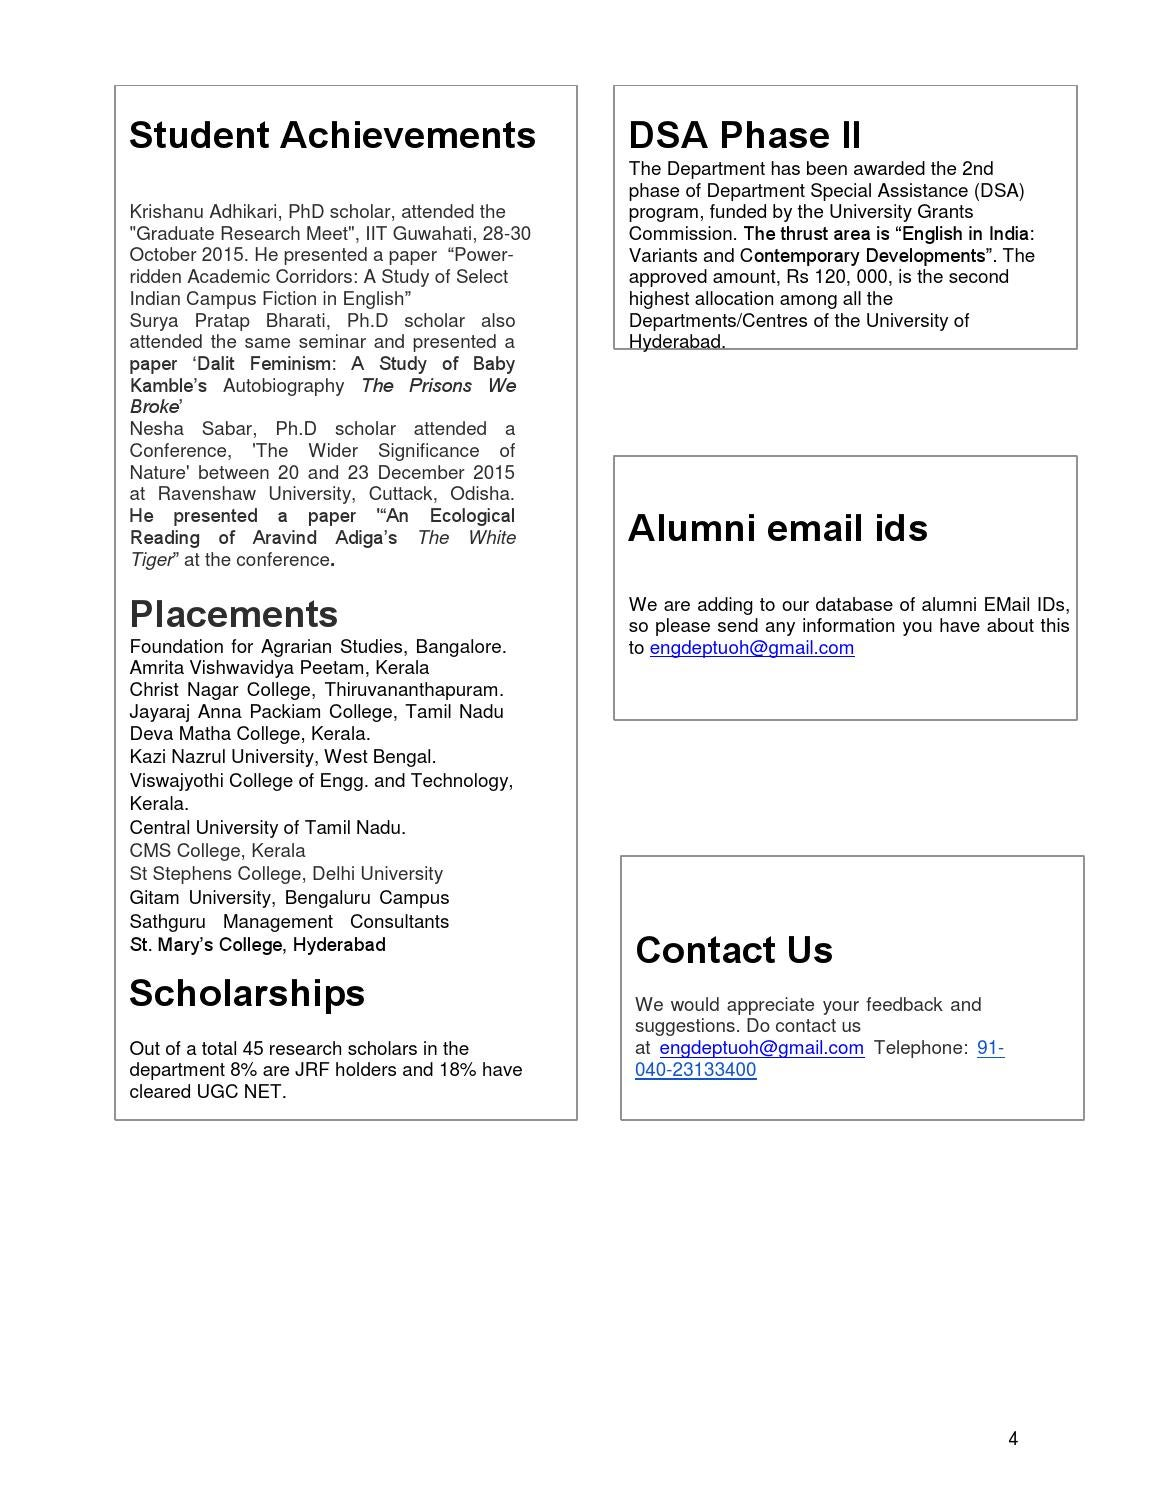 English Letters - Issue 1 by University of Hyderabad - issuu